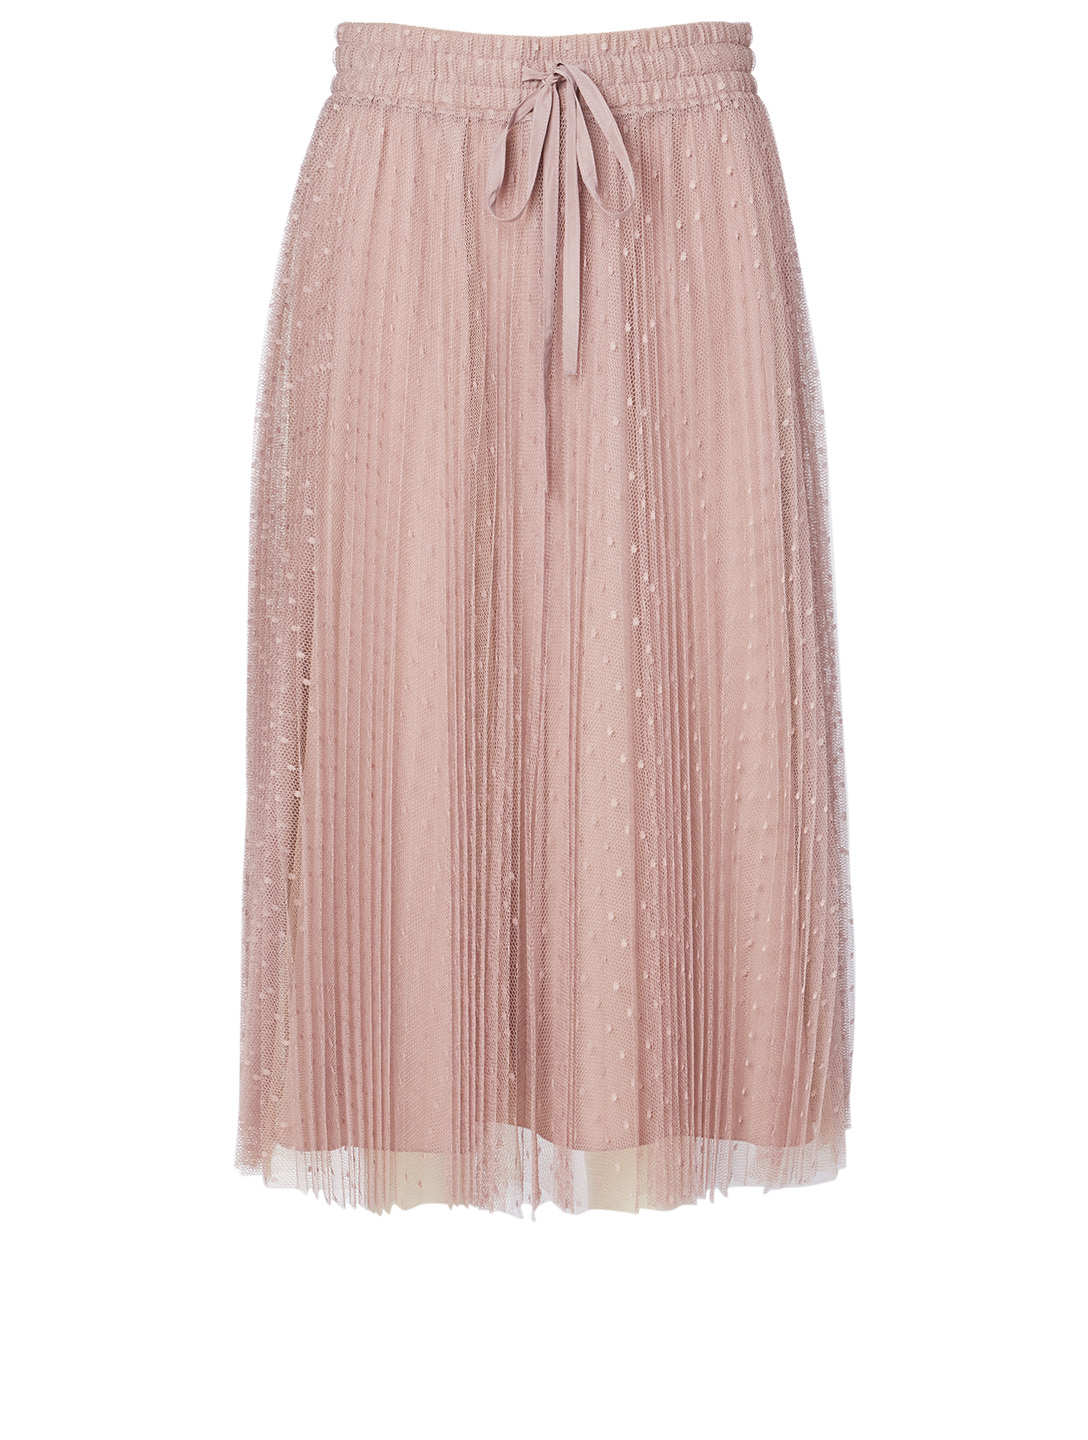 RED VALENTINO Pleated Tulle Midi Skirt Women's Purple